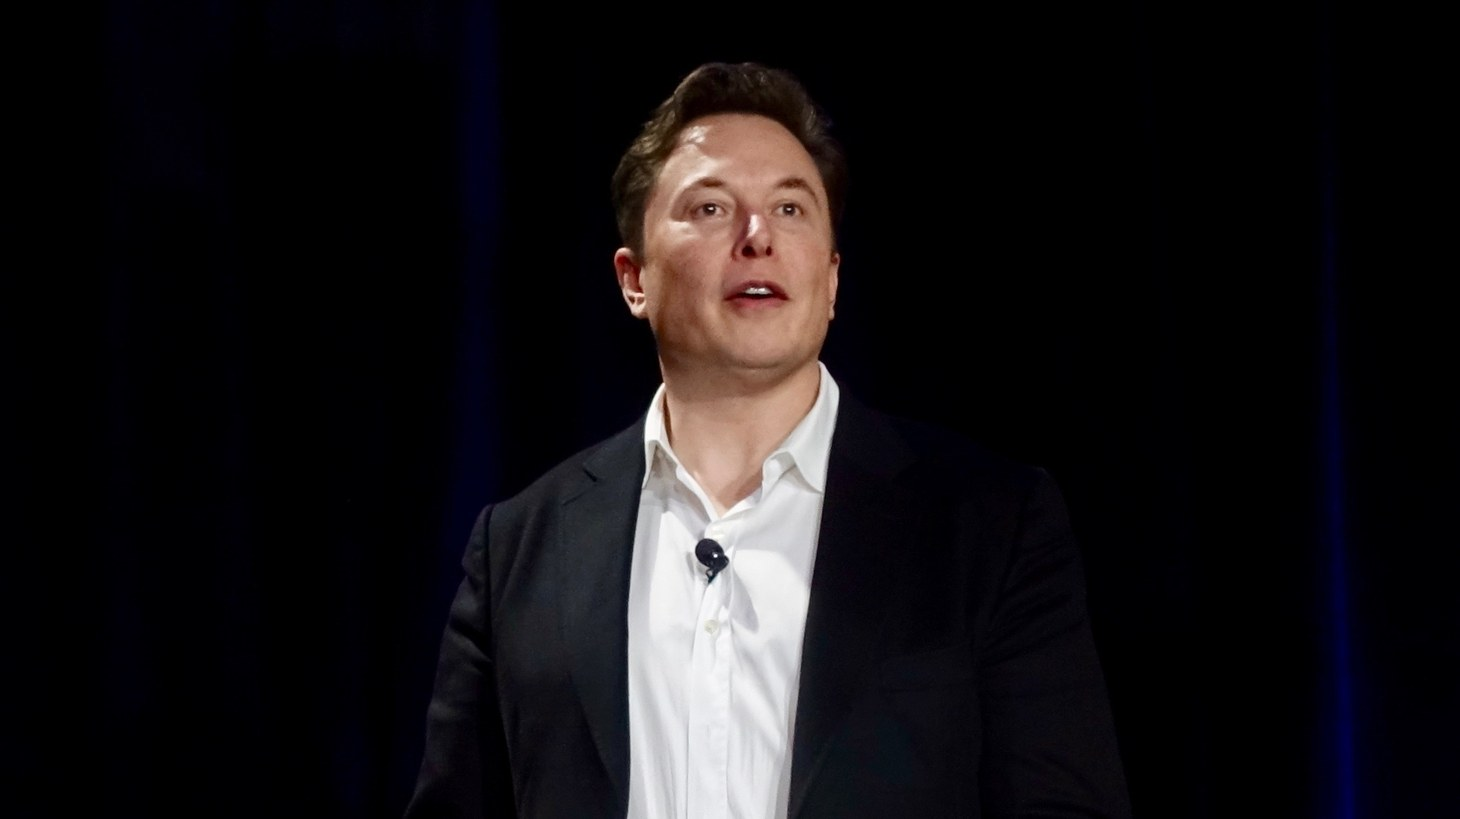 Some see Elon's Musk's personal move to Texas as a blow to California's prestige and possibly its economy.